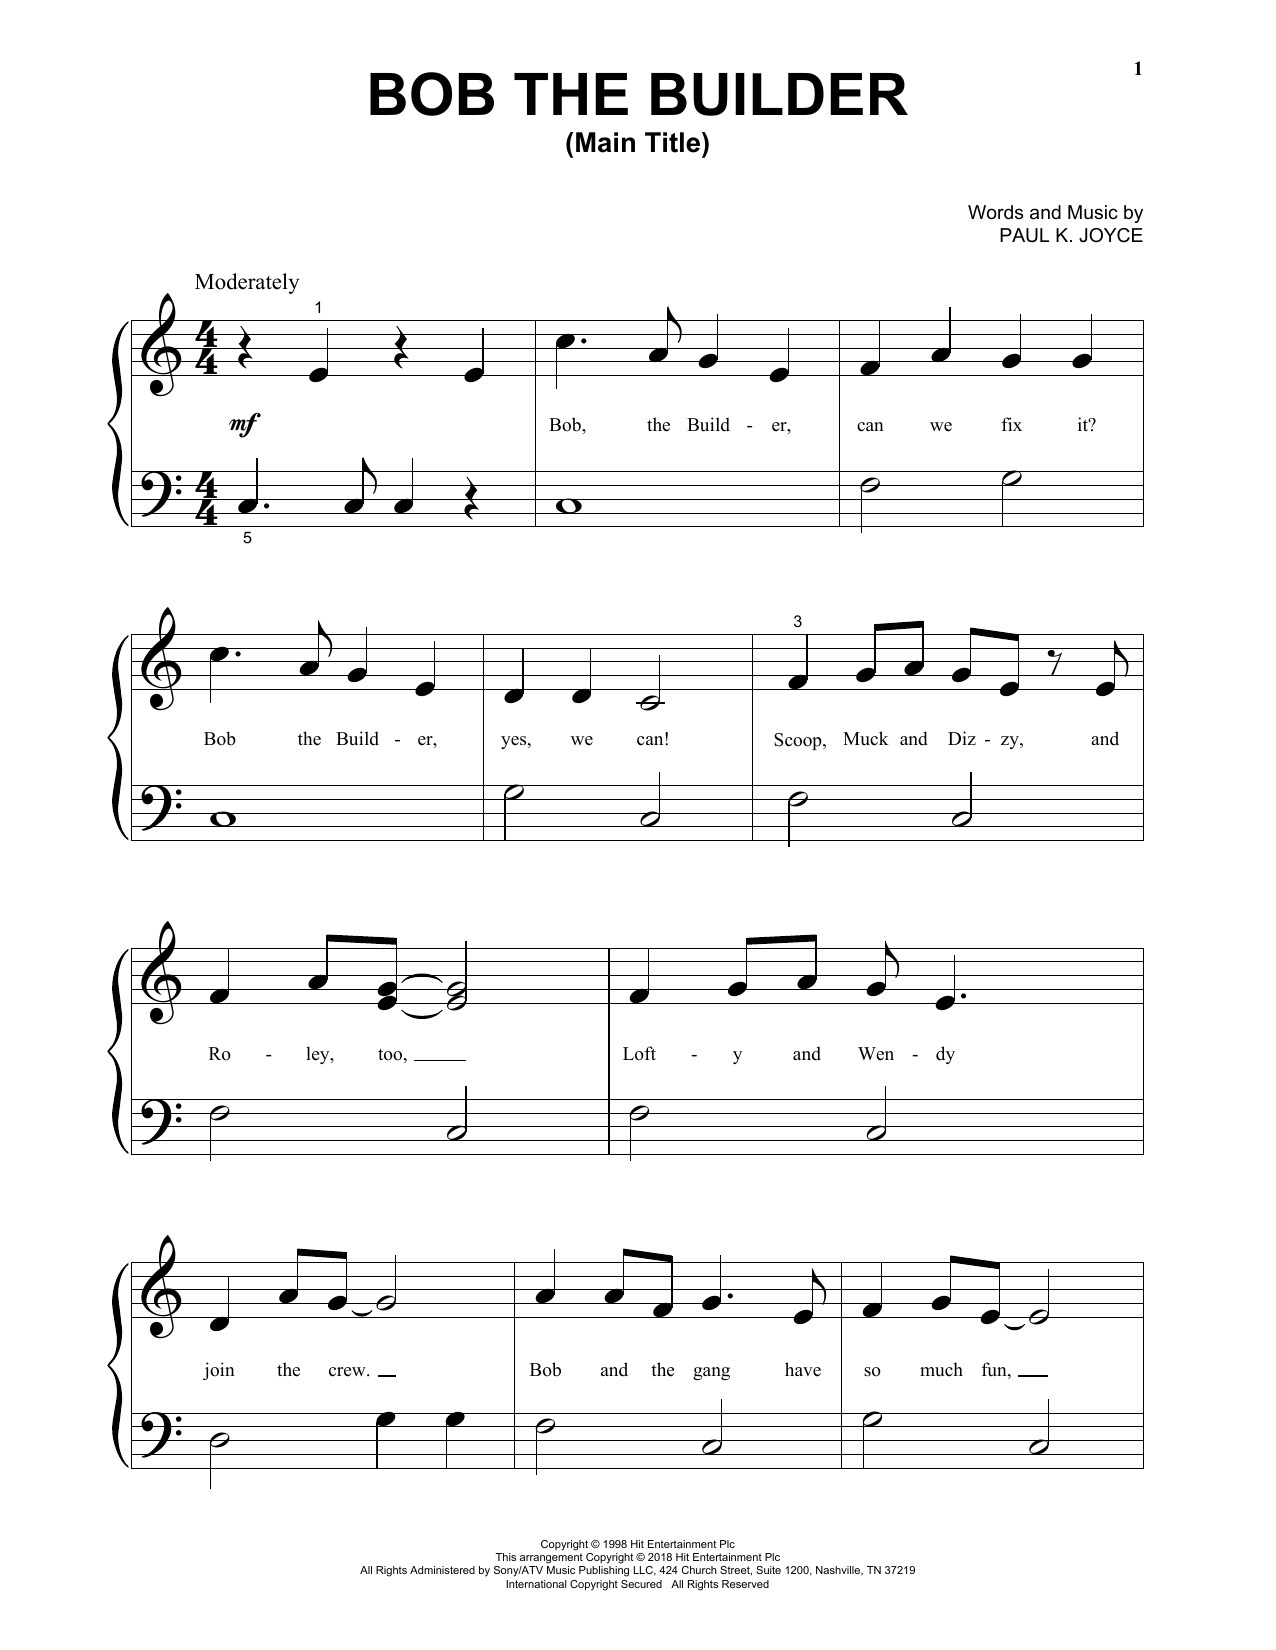 Paul K. Joyce Bob The Builder (Main Title) sheet music notes and chords. Download Printable PDF.